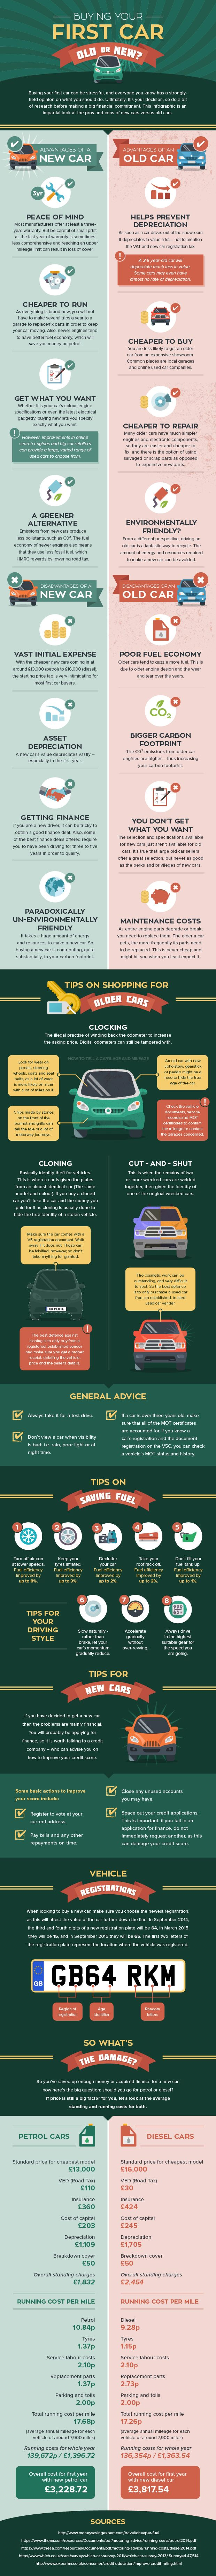 Buying your First Car Old or New? #infographic #Cars #Transportation ...